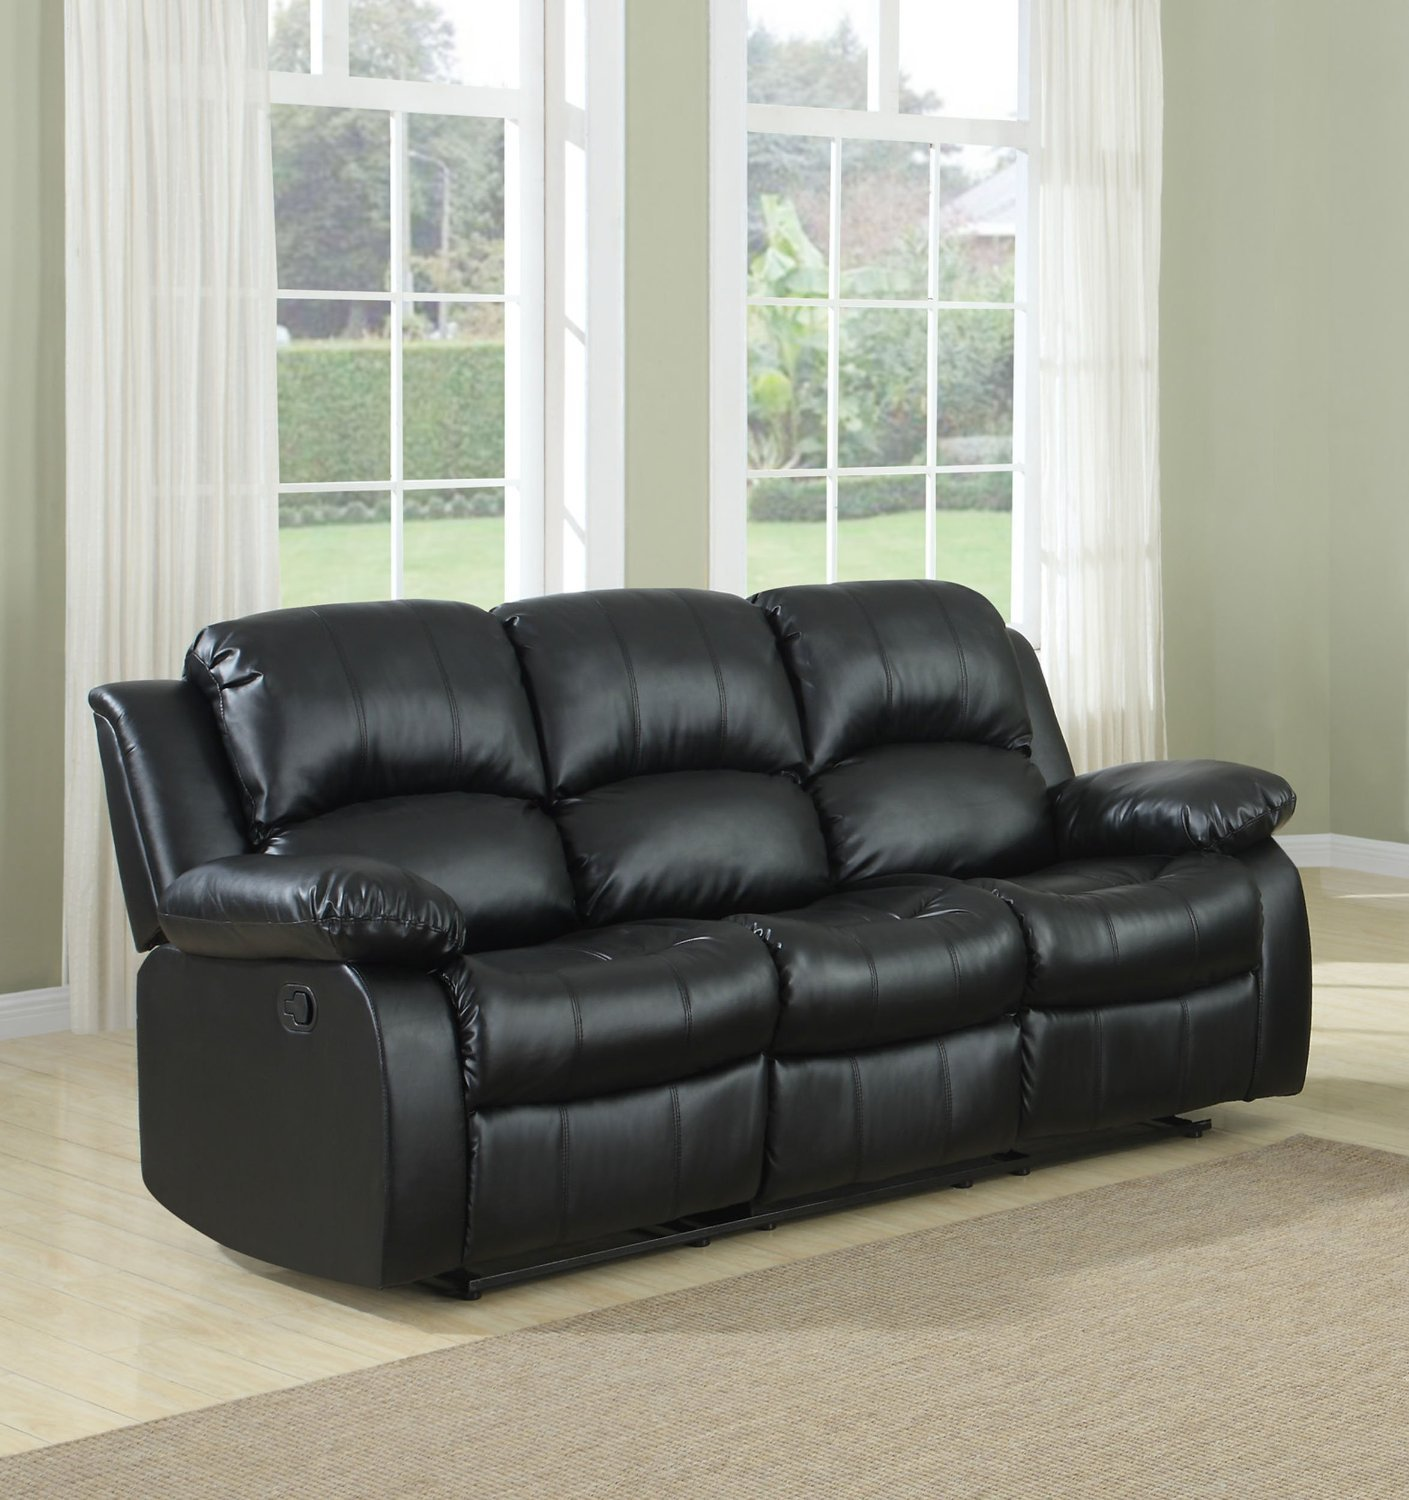 Amazon.com: 3 Seat Sofa Double Recliner Black / Brown Bonded Leather  (Black): Kitchen U0026 Dining